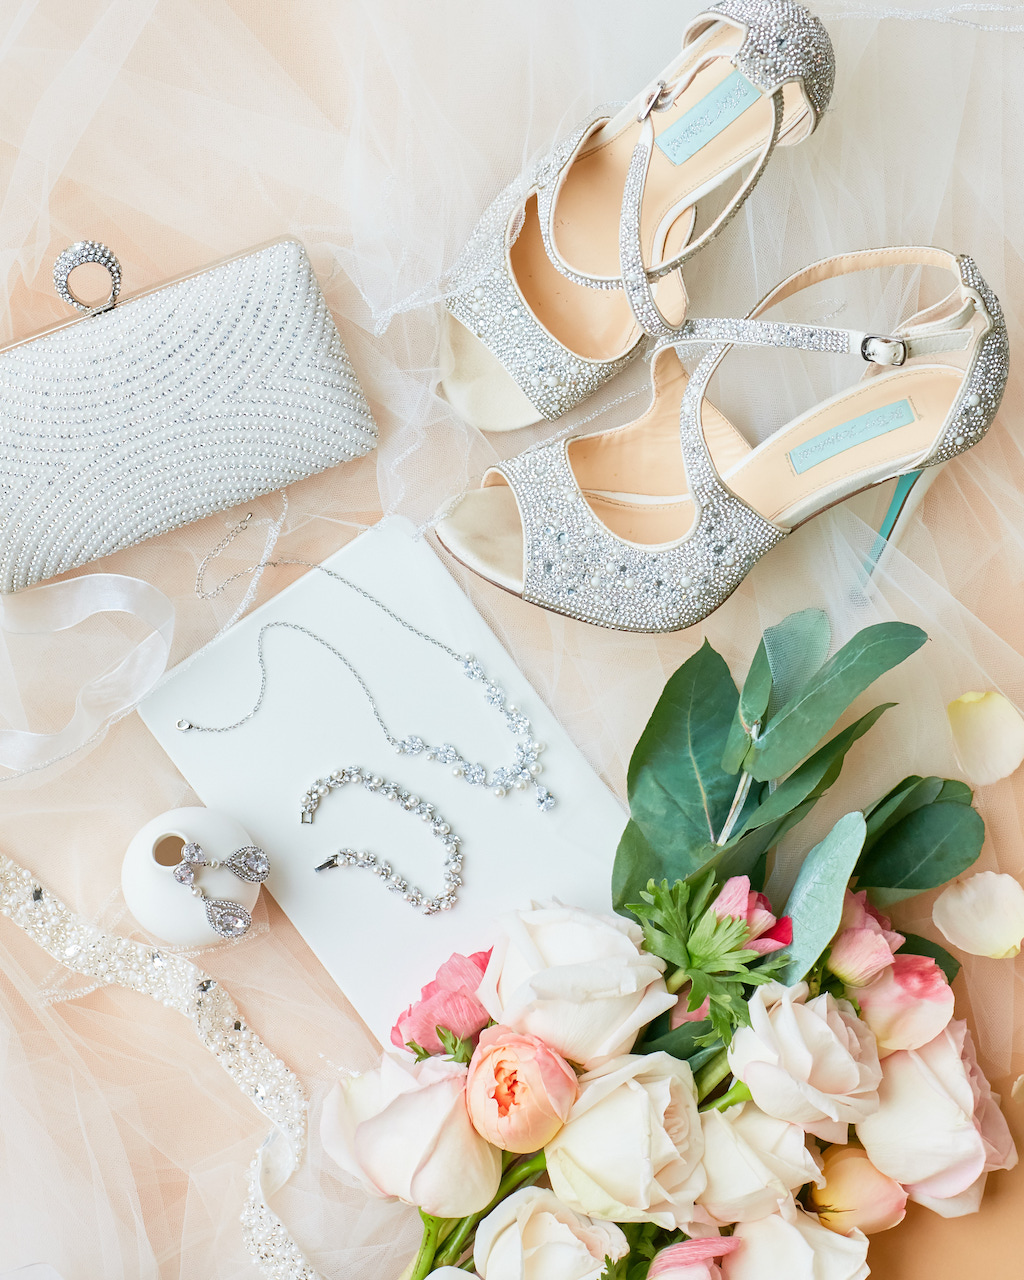 bridal accessory flatlay with shoes, jewelry, and clutch